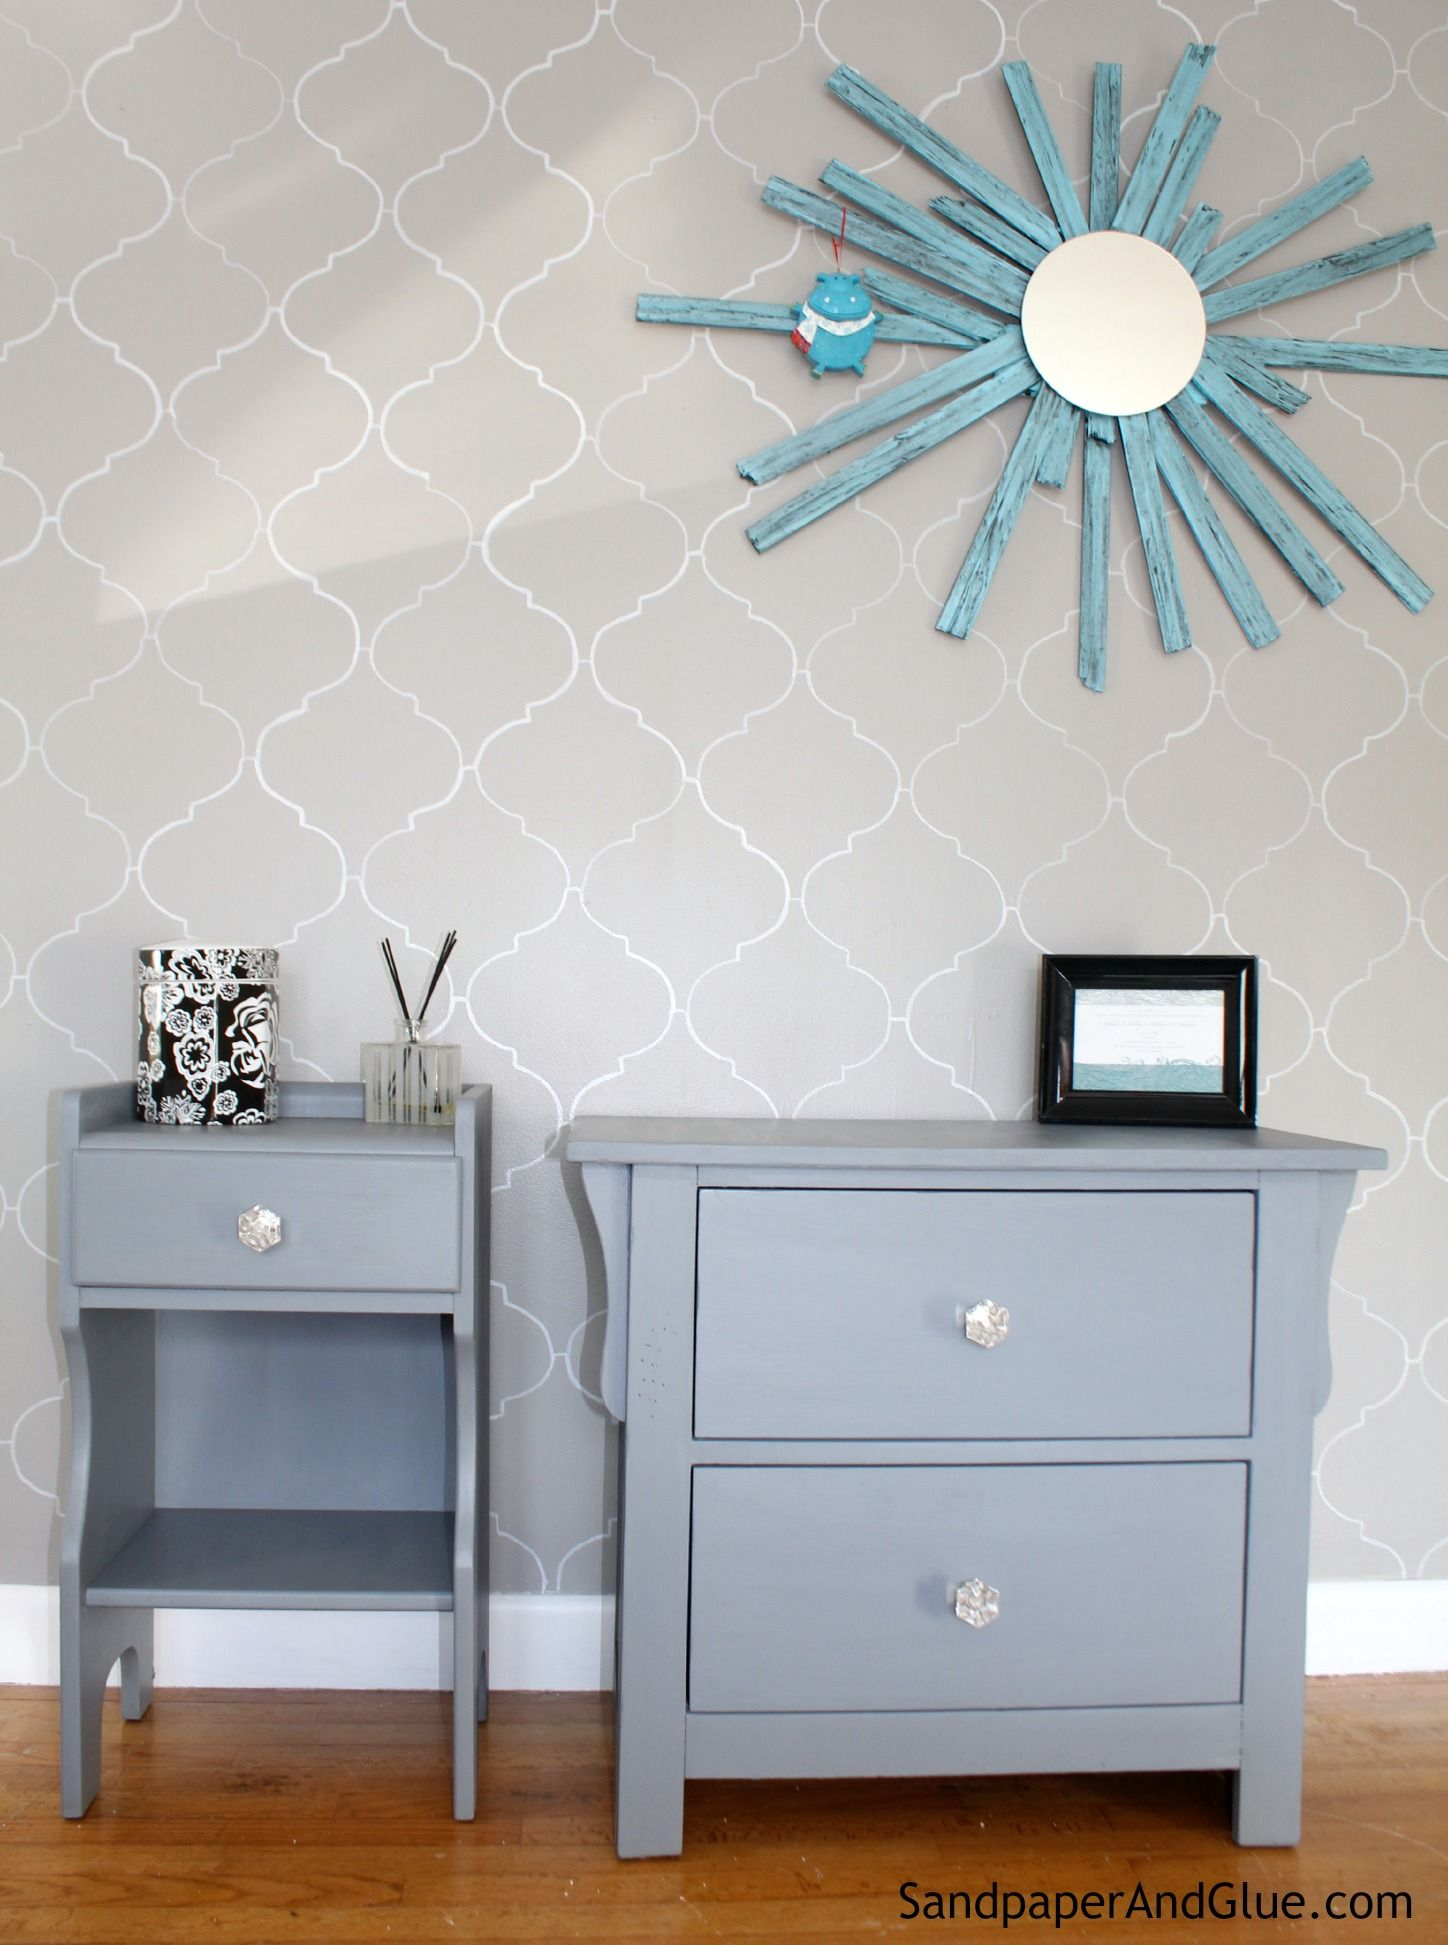 How to UNITE your MISMATCHED FURNITURE Mismatched